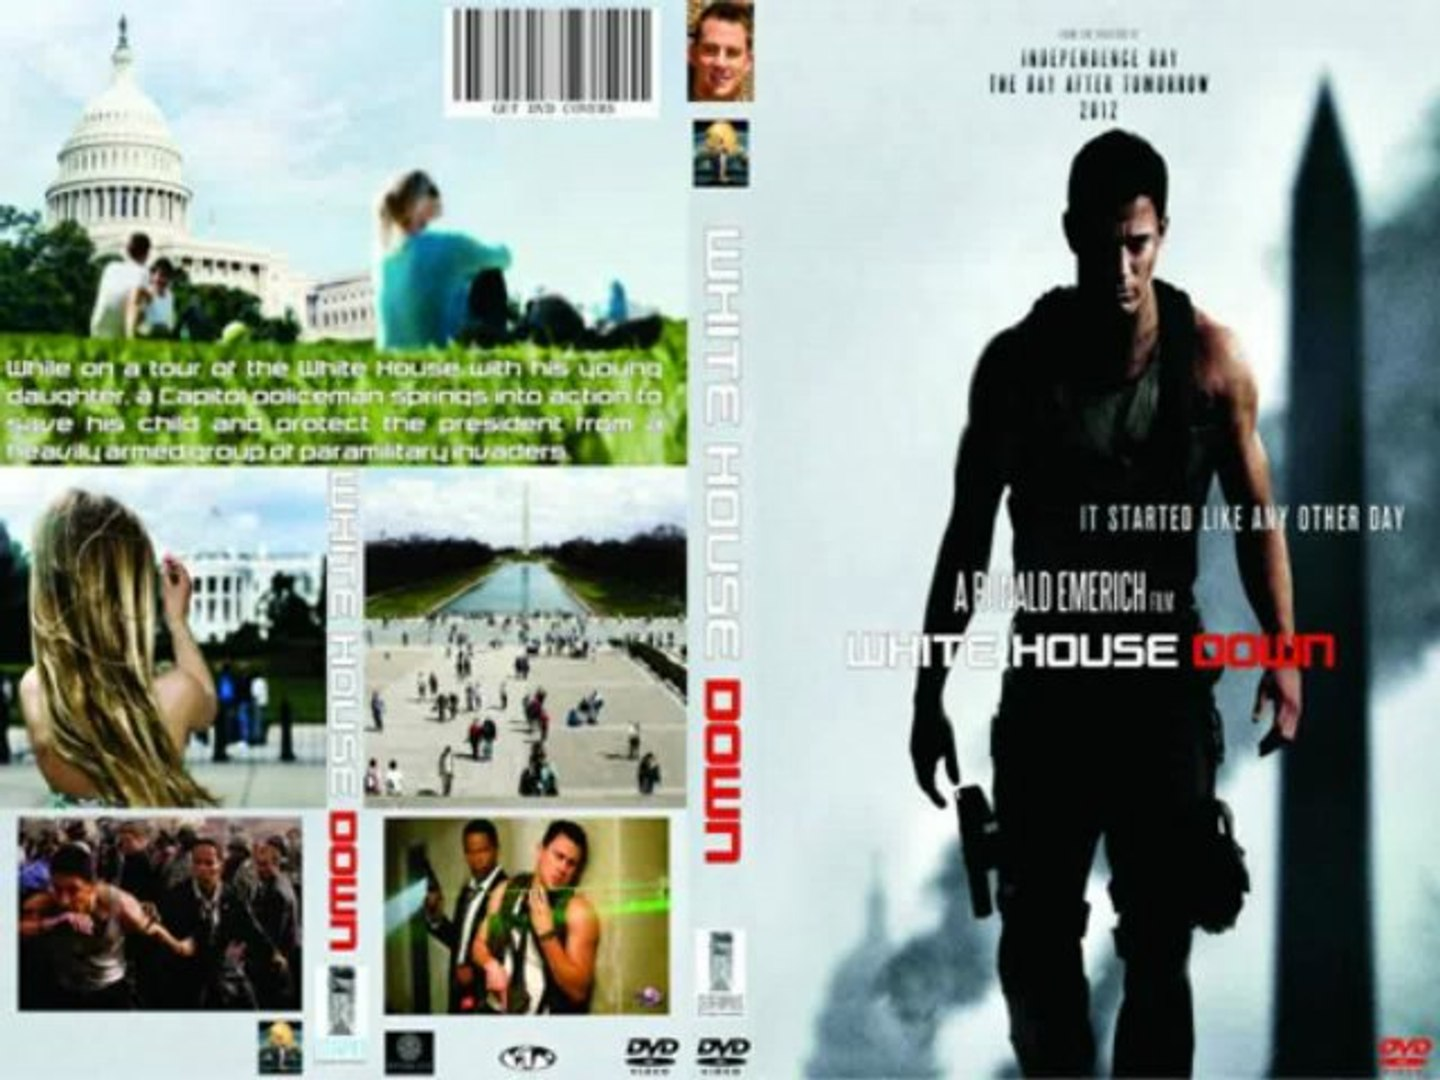 Complete Movie ONLINE White House Down  ++ FREE Movie++ with High Definition 720p [streaming movie r